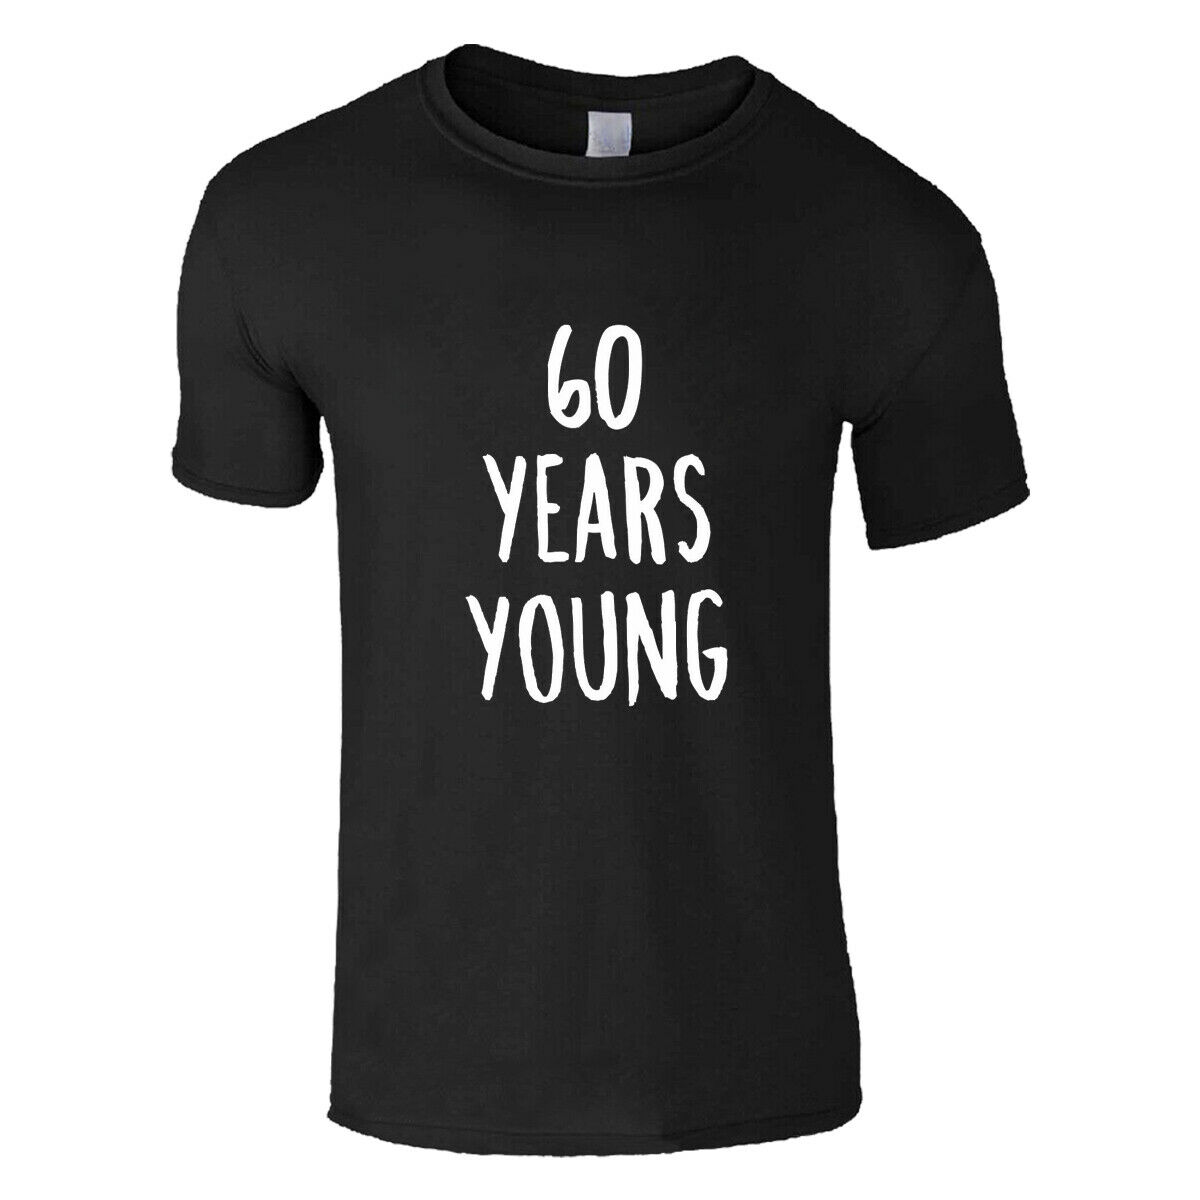 60th Birthday 60 Years Young Grandad Dad Top T-Shirt